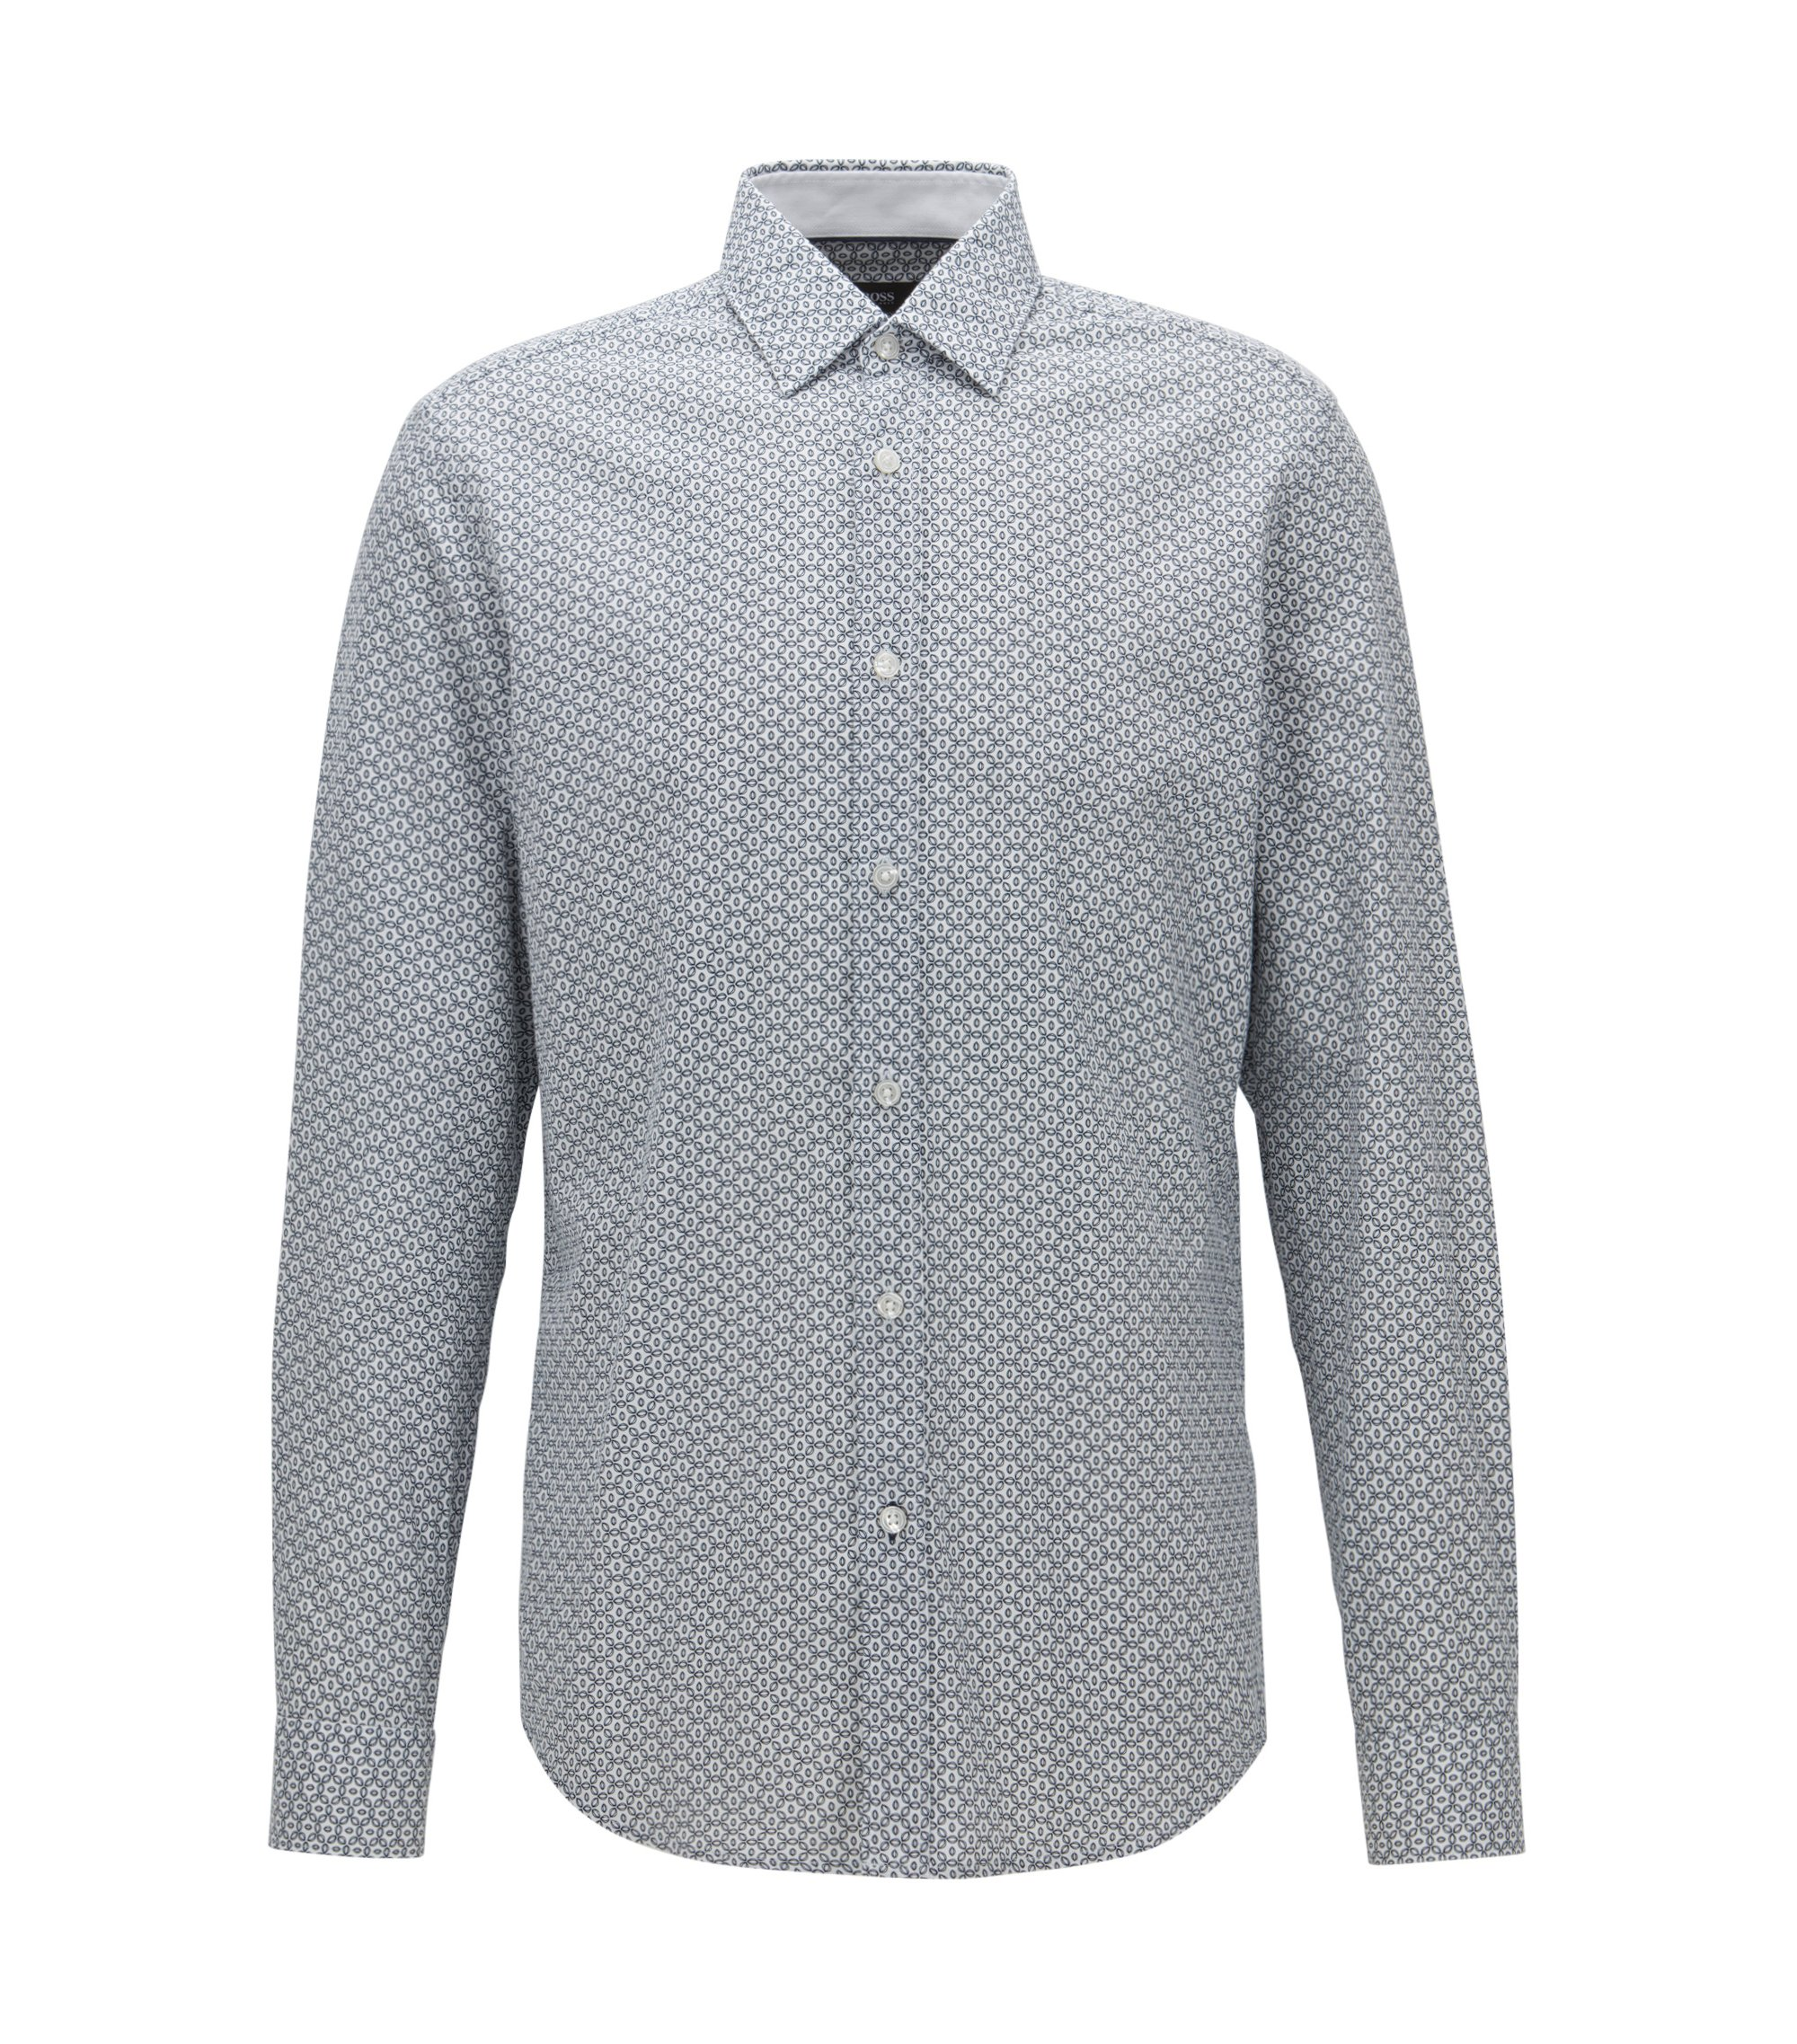 Camisa de algodón estampado y corte regular fit, Natural